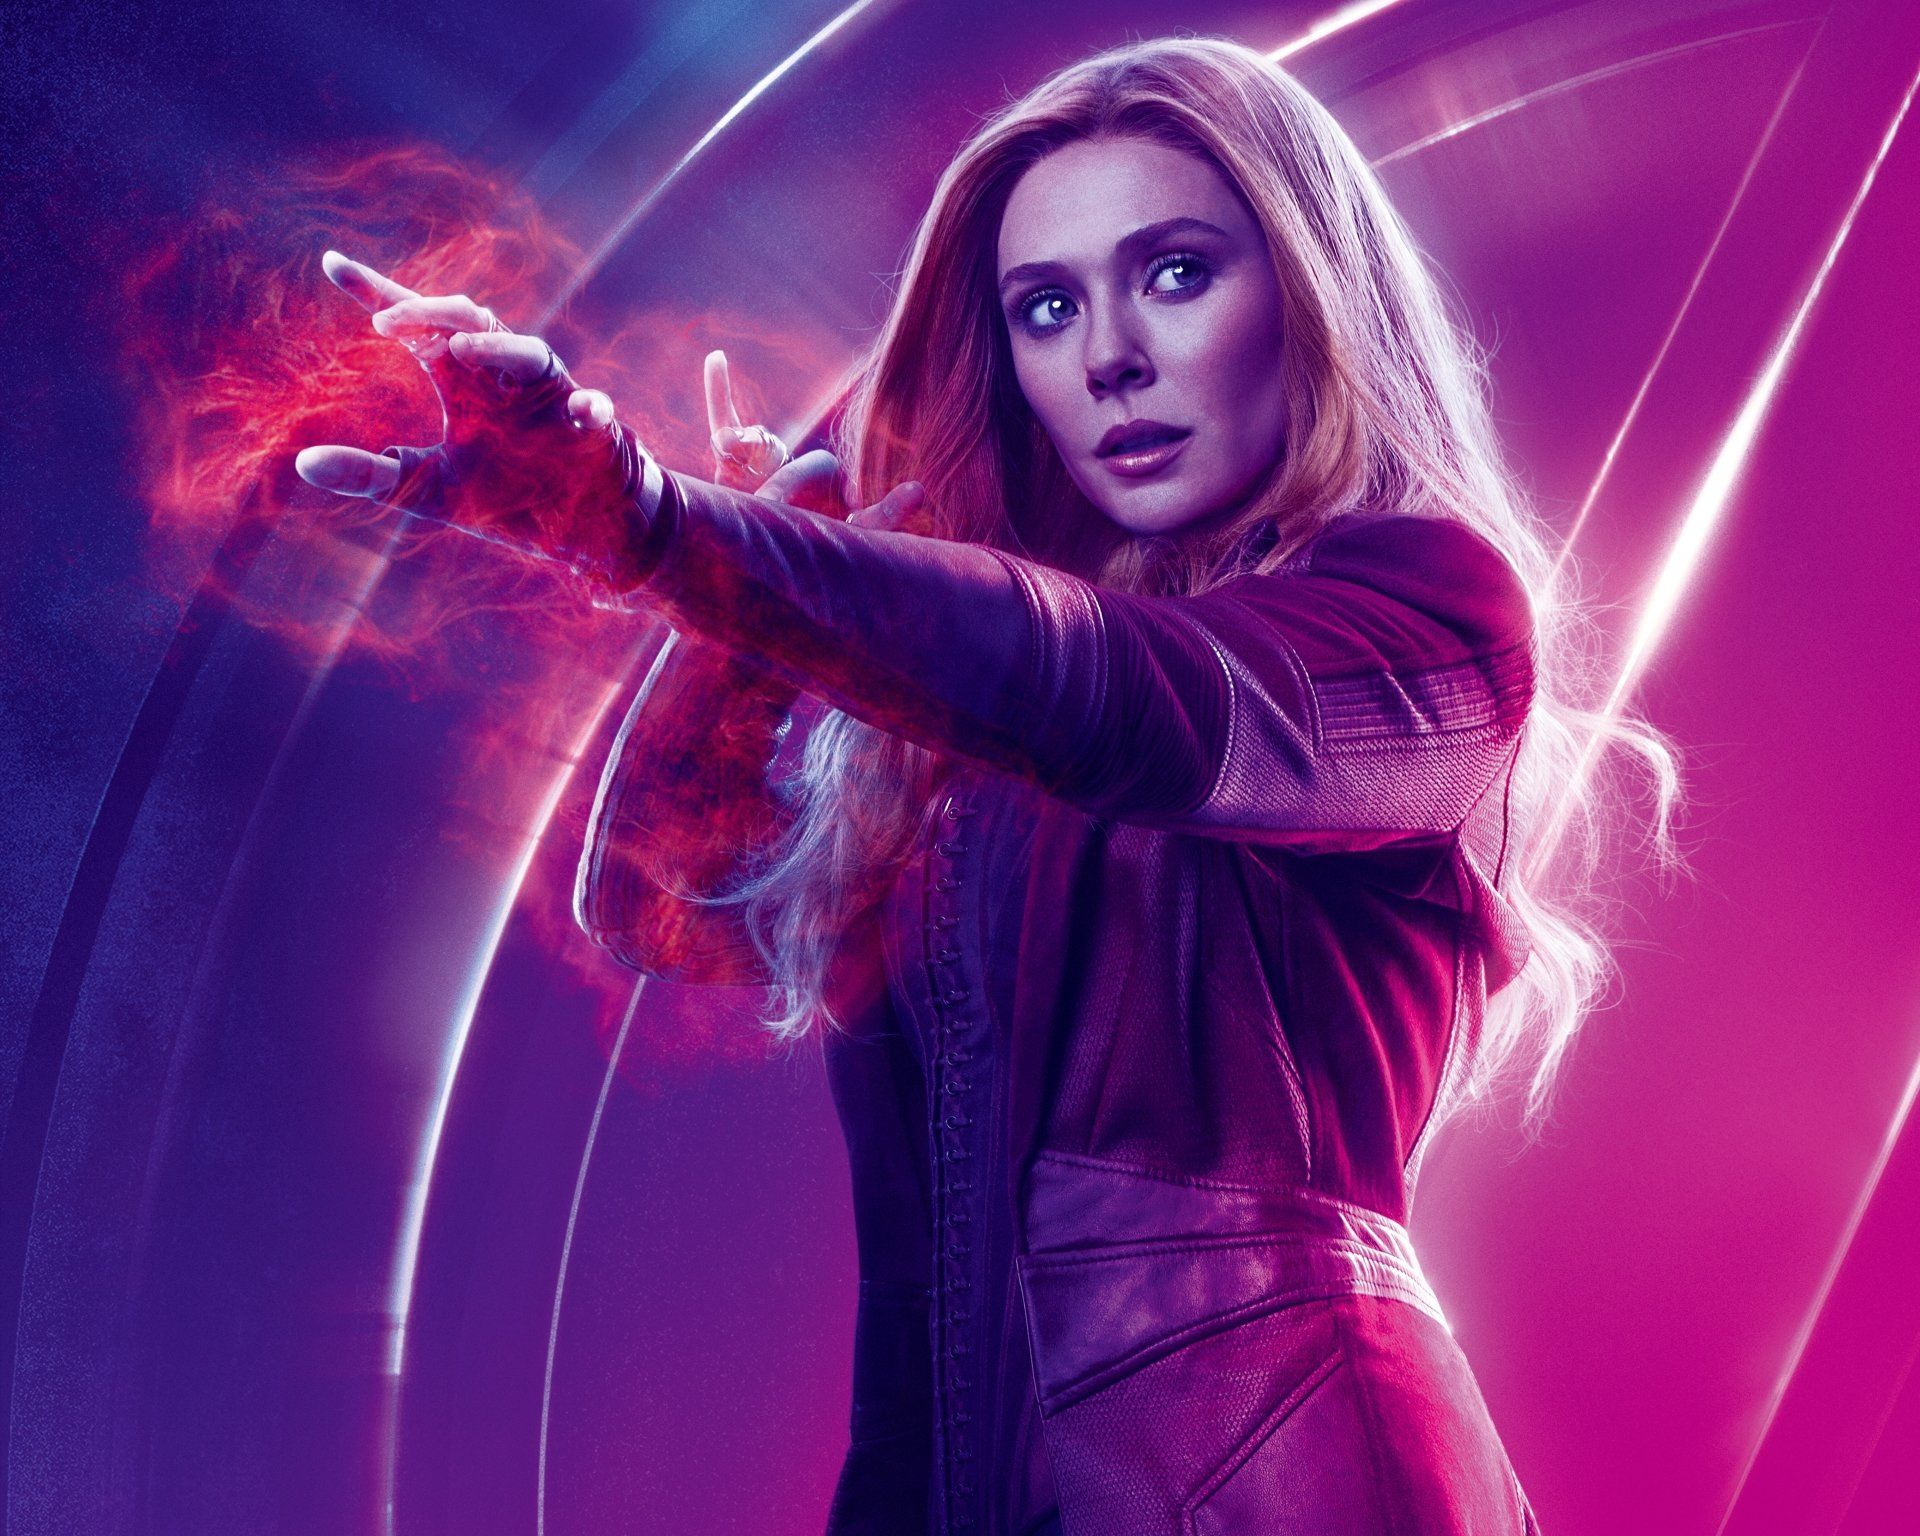 Scarlet Witch Avengers Infinity War 8k Ultra Hd Wallpaper And Background Image 7871x6297 Id 9162 Scarlet Witch Avengers Scarlet Witch Marvel Marvel Photo